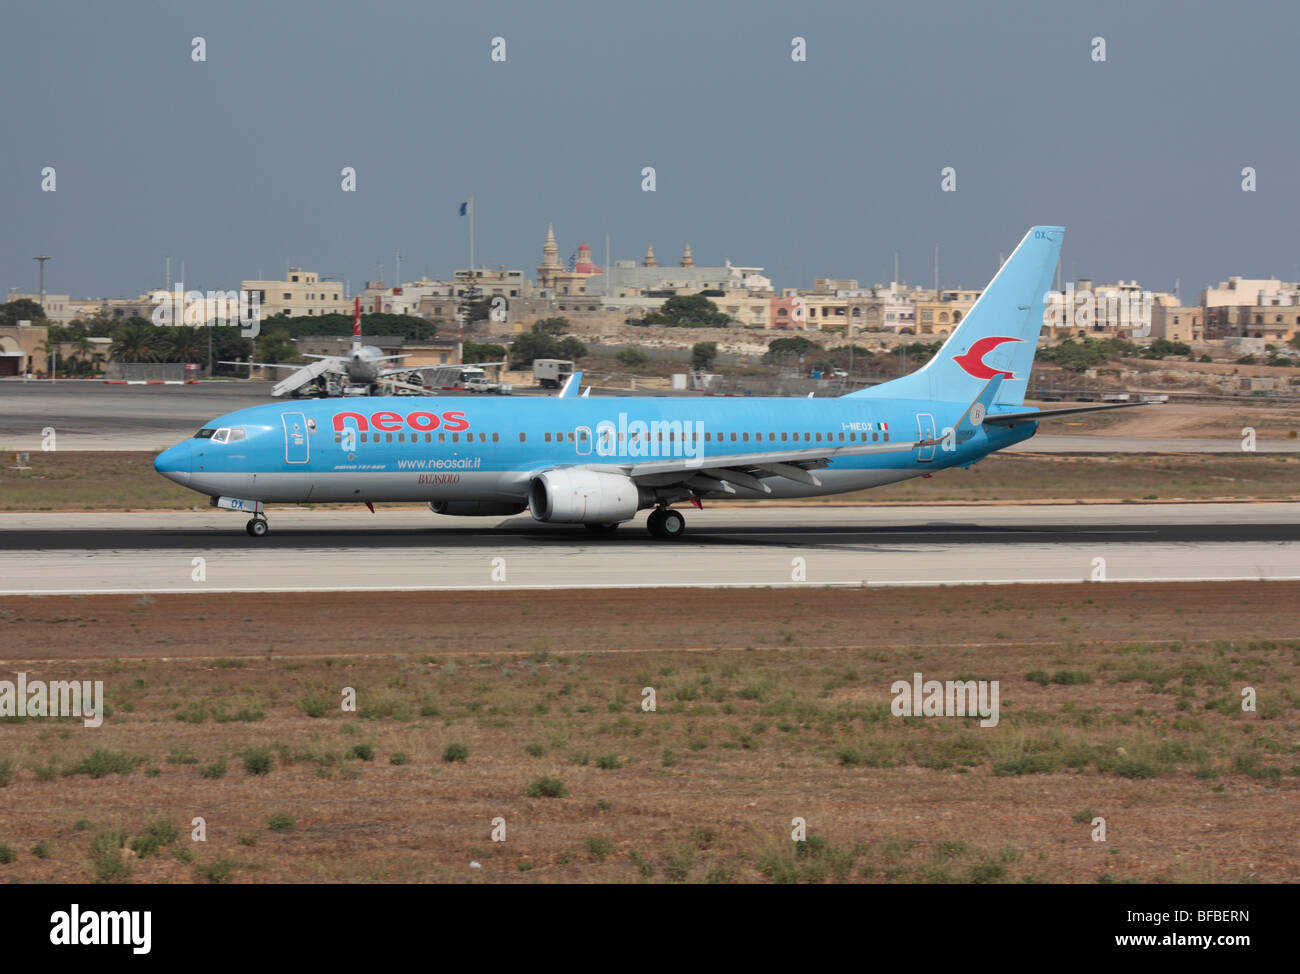 Neos Boeing 737-800 departing from Malta - Stock Image